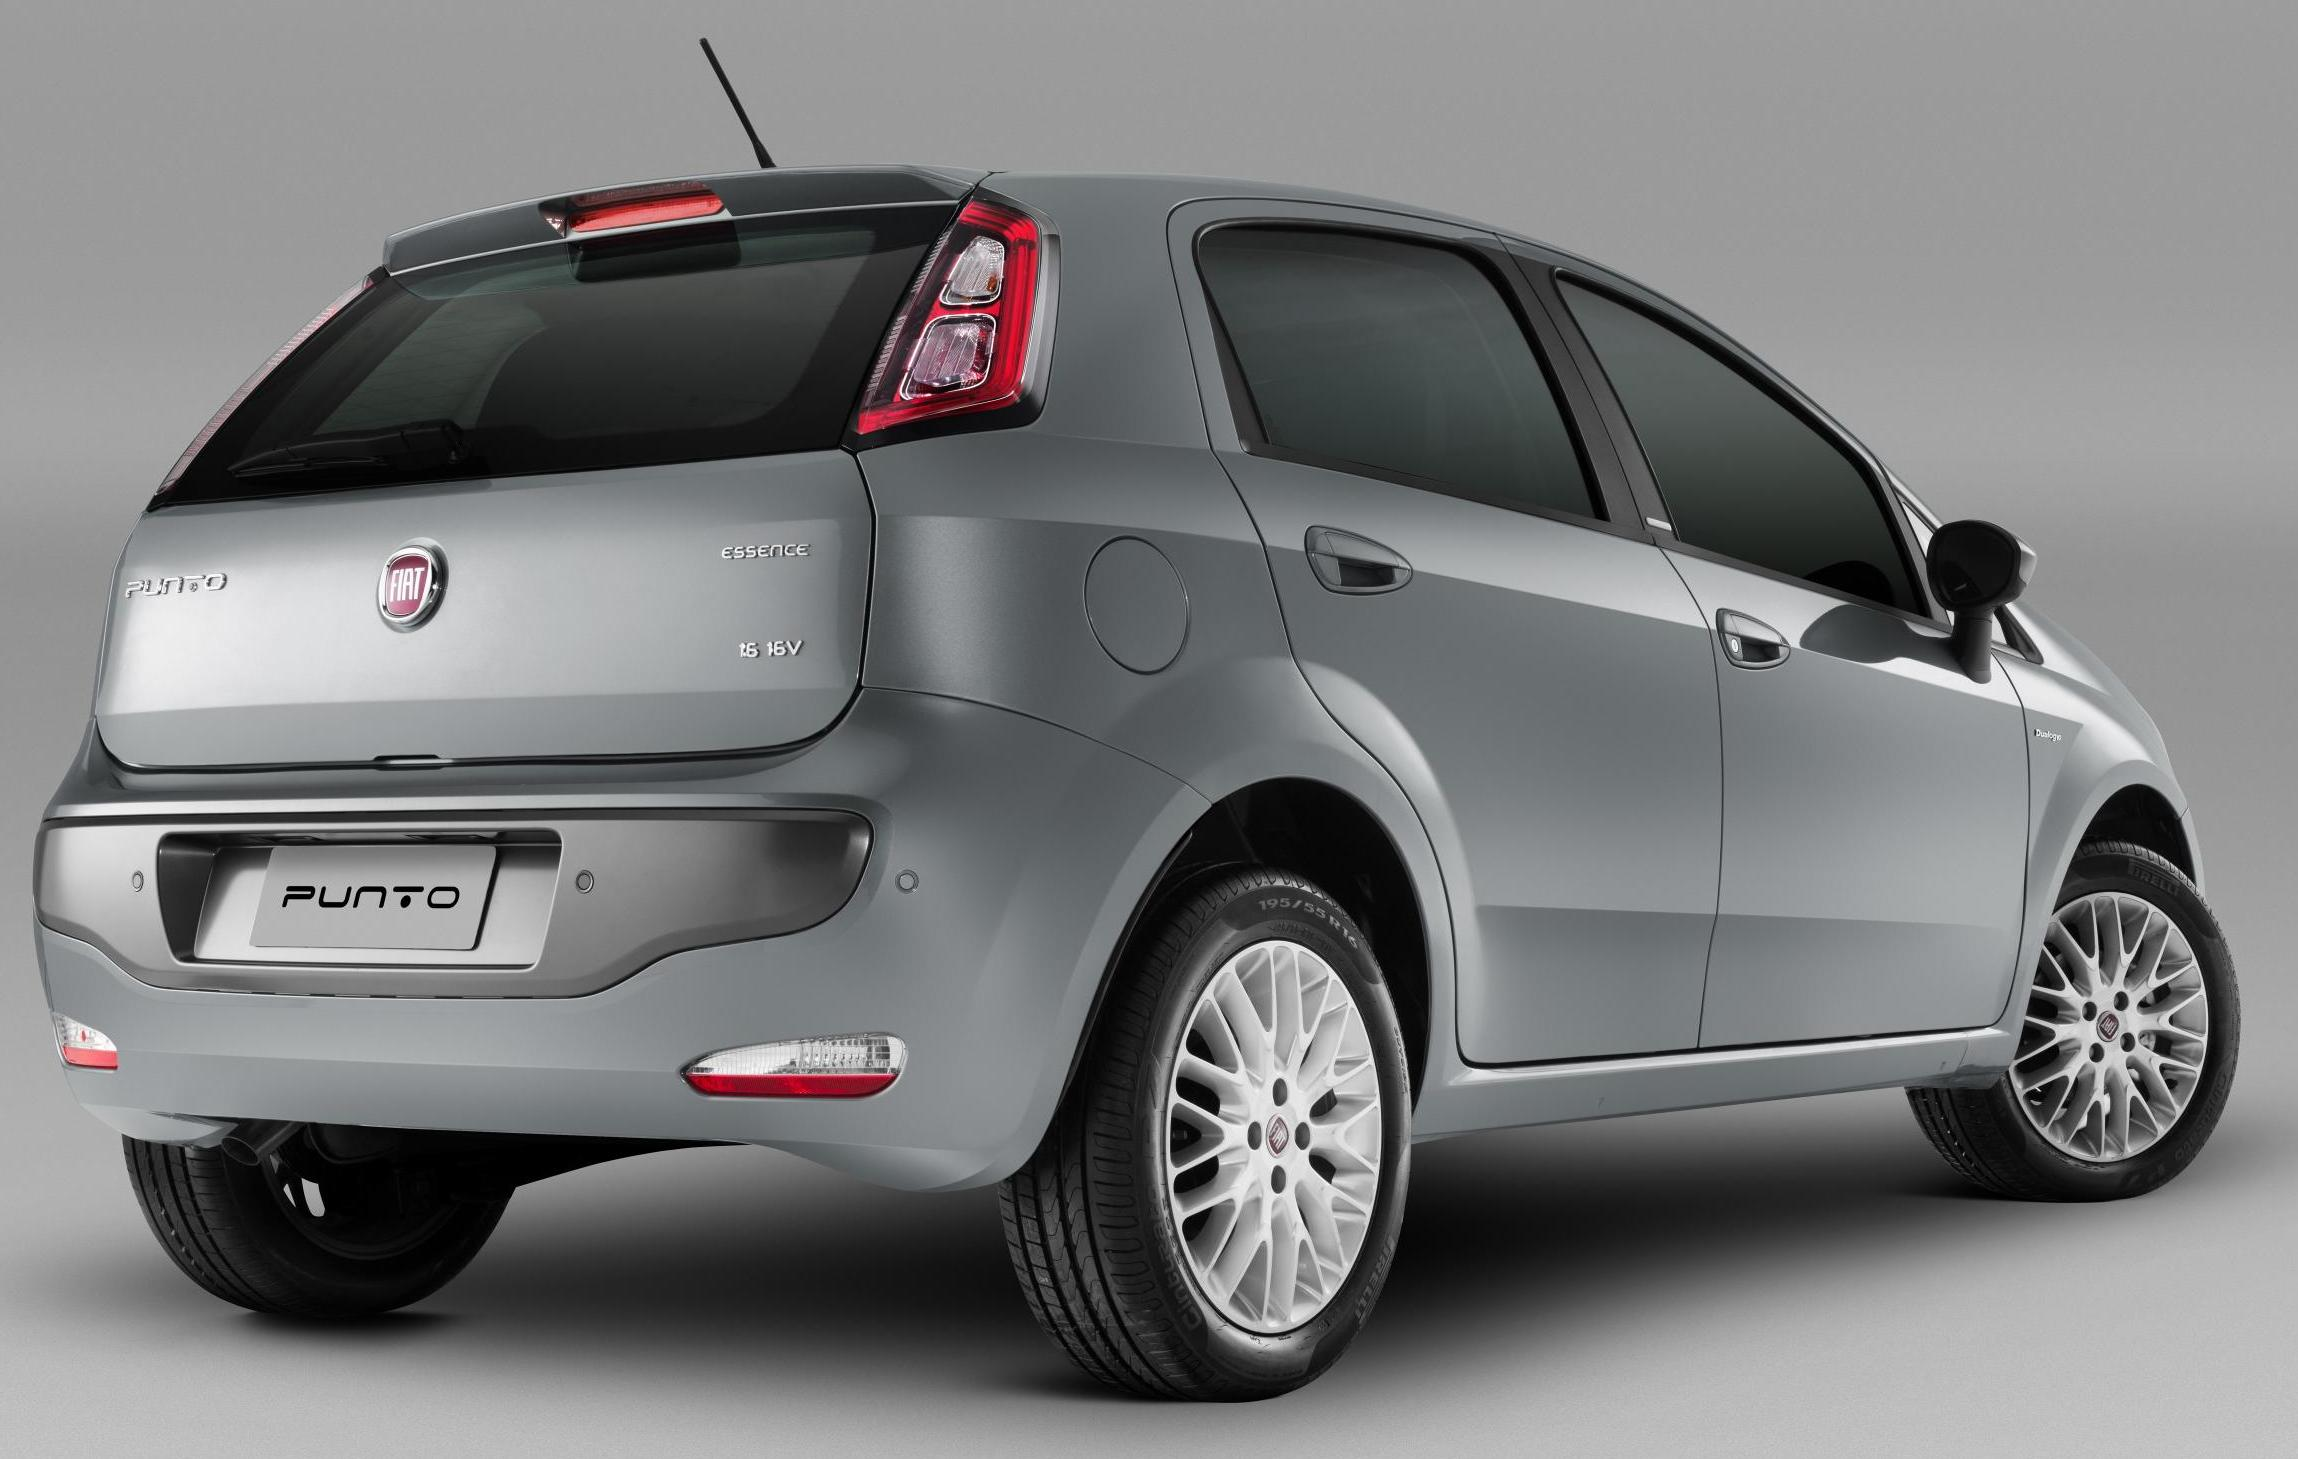 fiat punto 2013 essence 02 all the cars. Black Bedroom Furniture Sets. Home Design Ideas